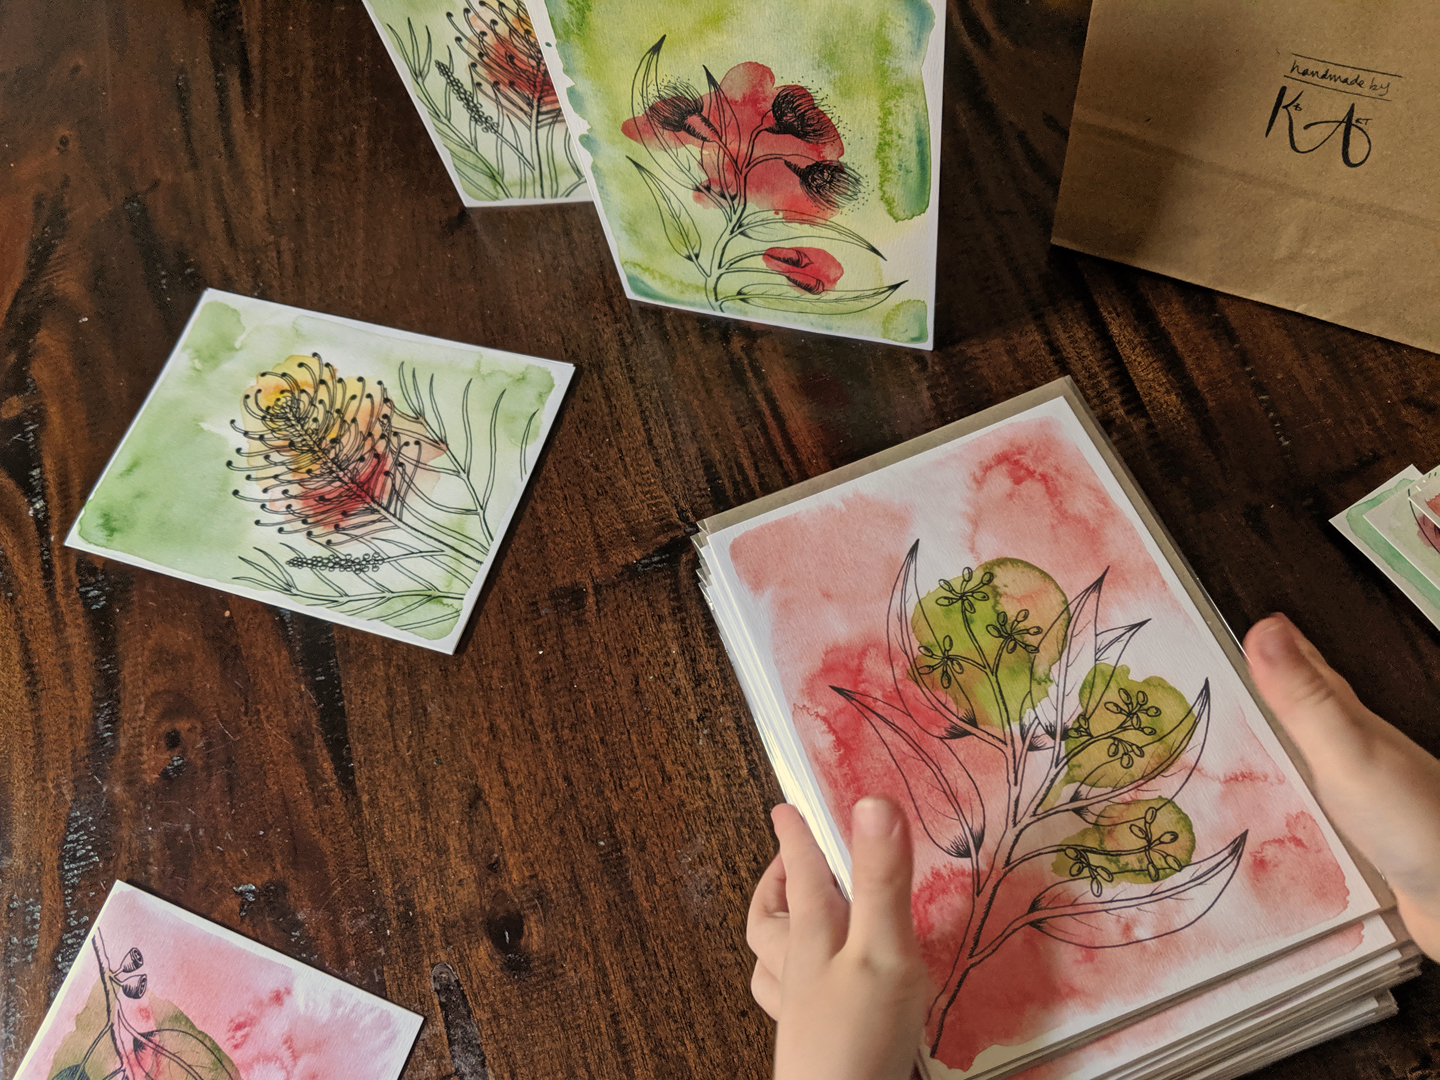 A stack of Kirby's hand-drawn cards featuring native plants